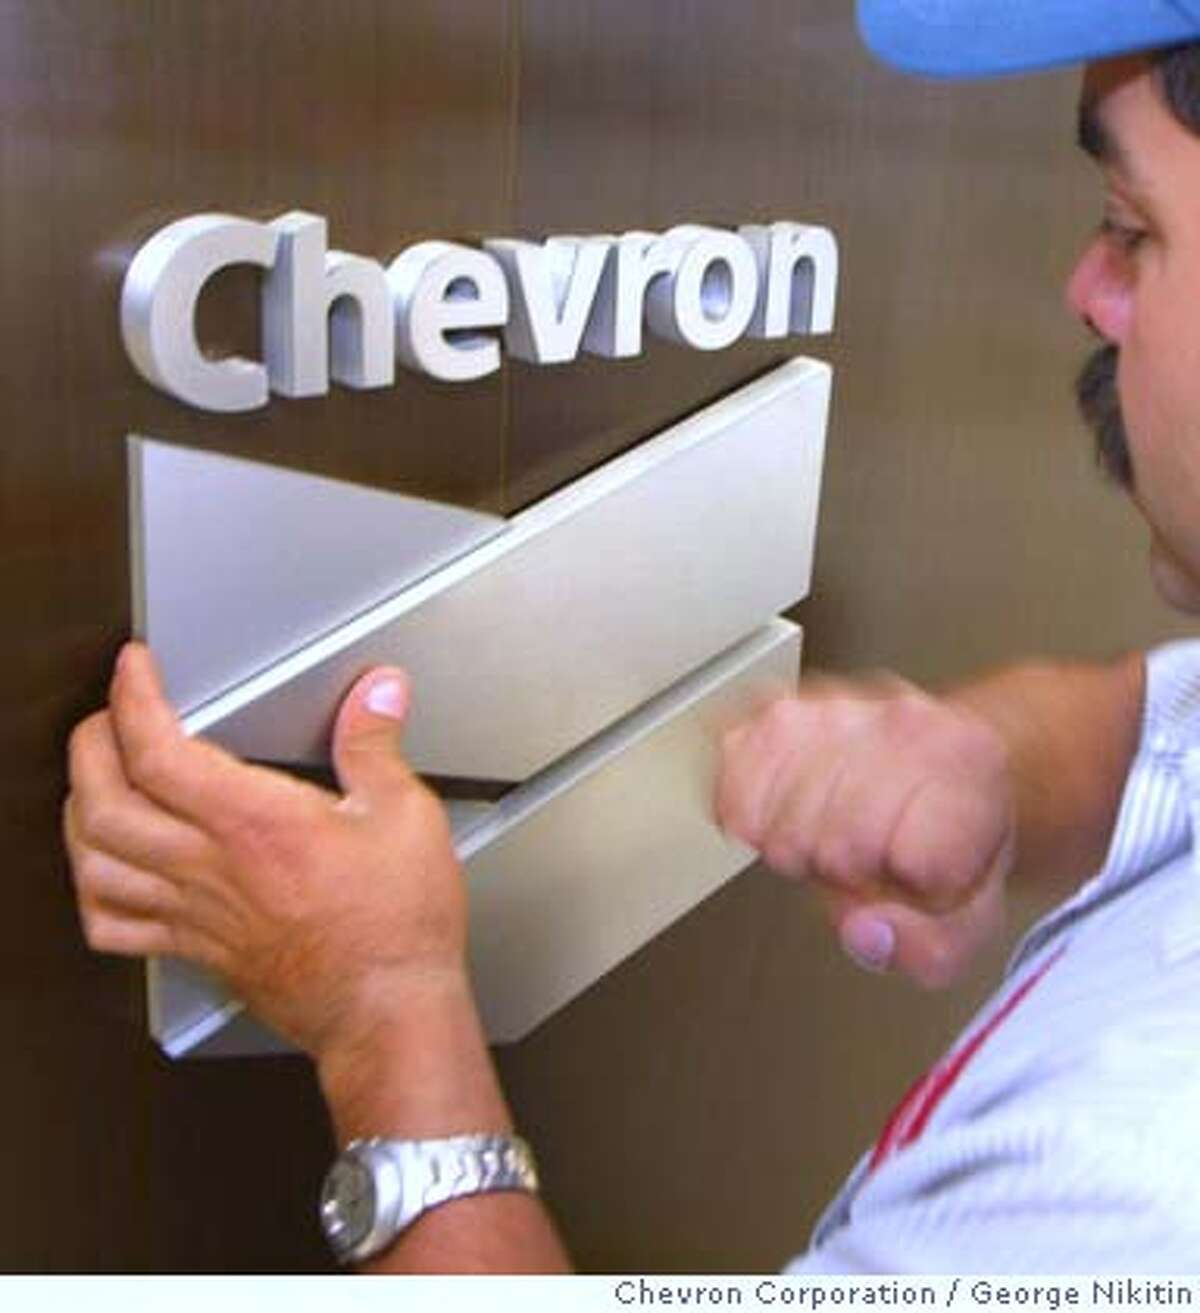 EMBARGO UNTIL MAY 9, 2005, 8 AM PACIFIC TIME--Sign installer David Valdivia installs Chevron Corporation's new company logo at corporate headquarters, Monday May 9, 2005 in San Ramon, California. ChevronTexaco announced today that it is changing its name to Chevron Corporation in a move to present a clear, strong and unified presence in the global marketplace. (Photo/ho, George Nikitin, Chevron Corporation)